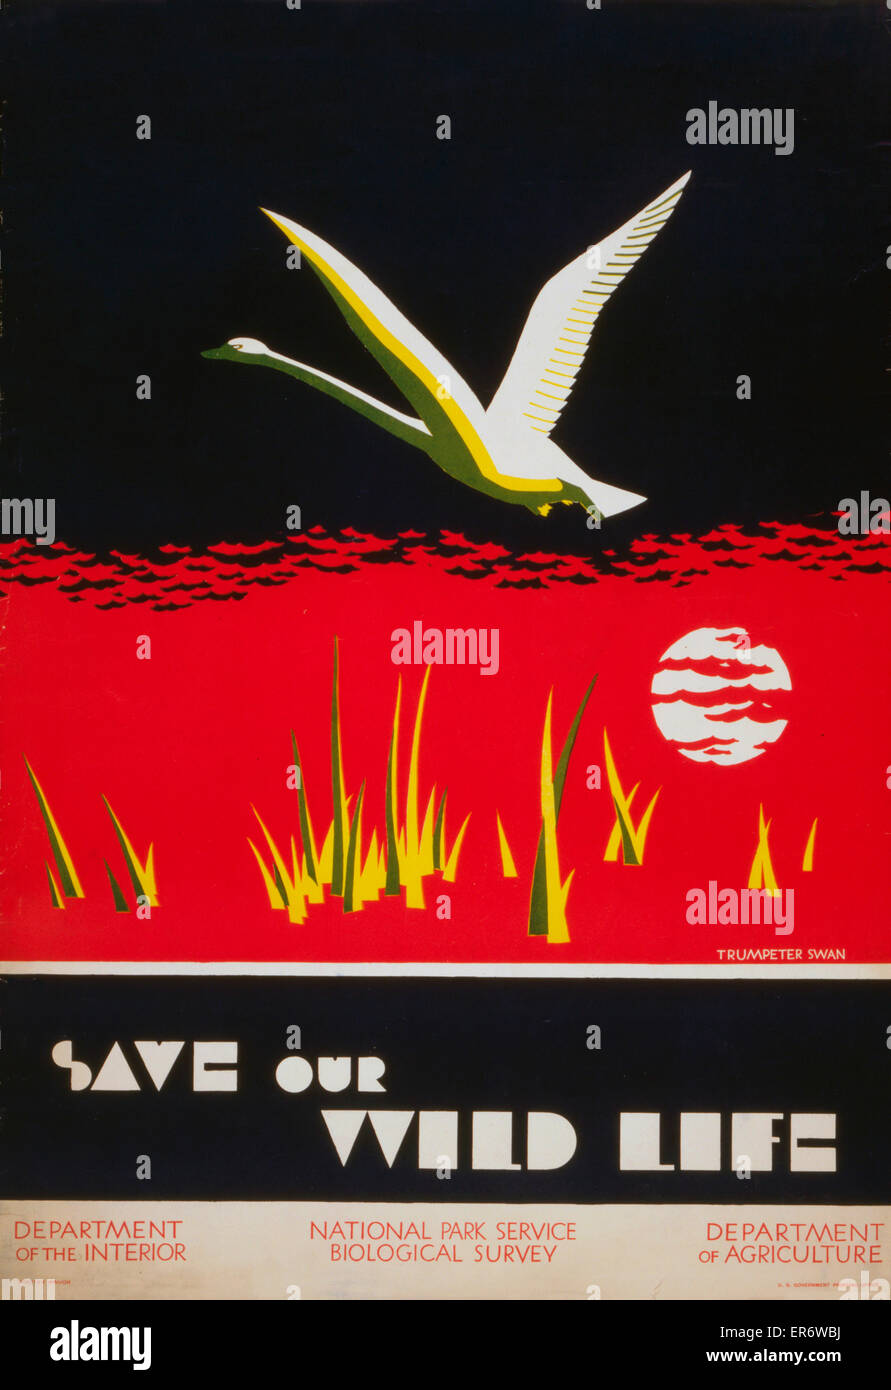 Save our wild life. Poster showing trumpeter swan. Date between 1930 and 1940. - Stock Image